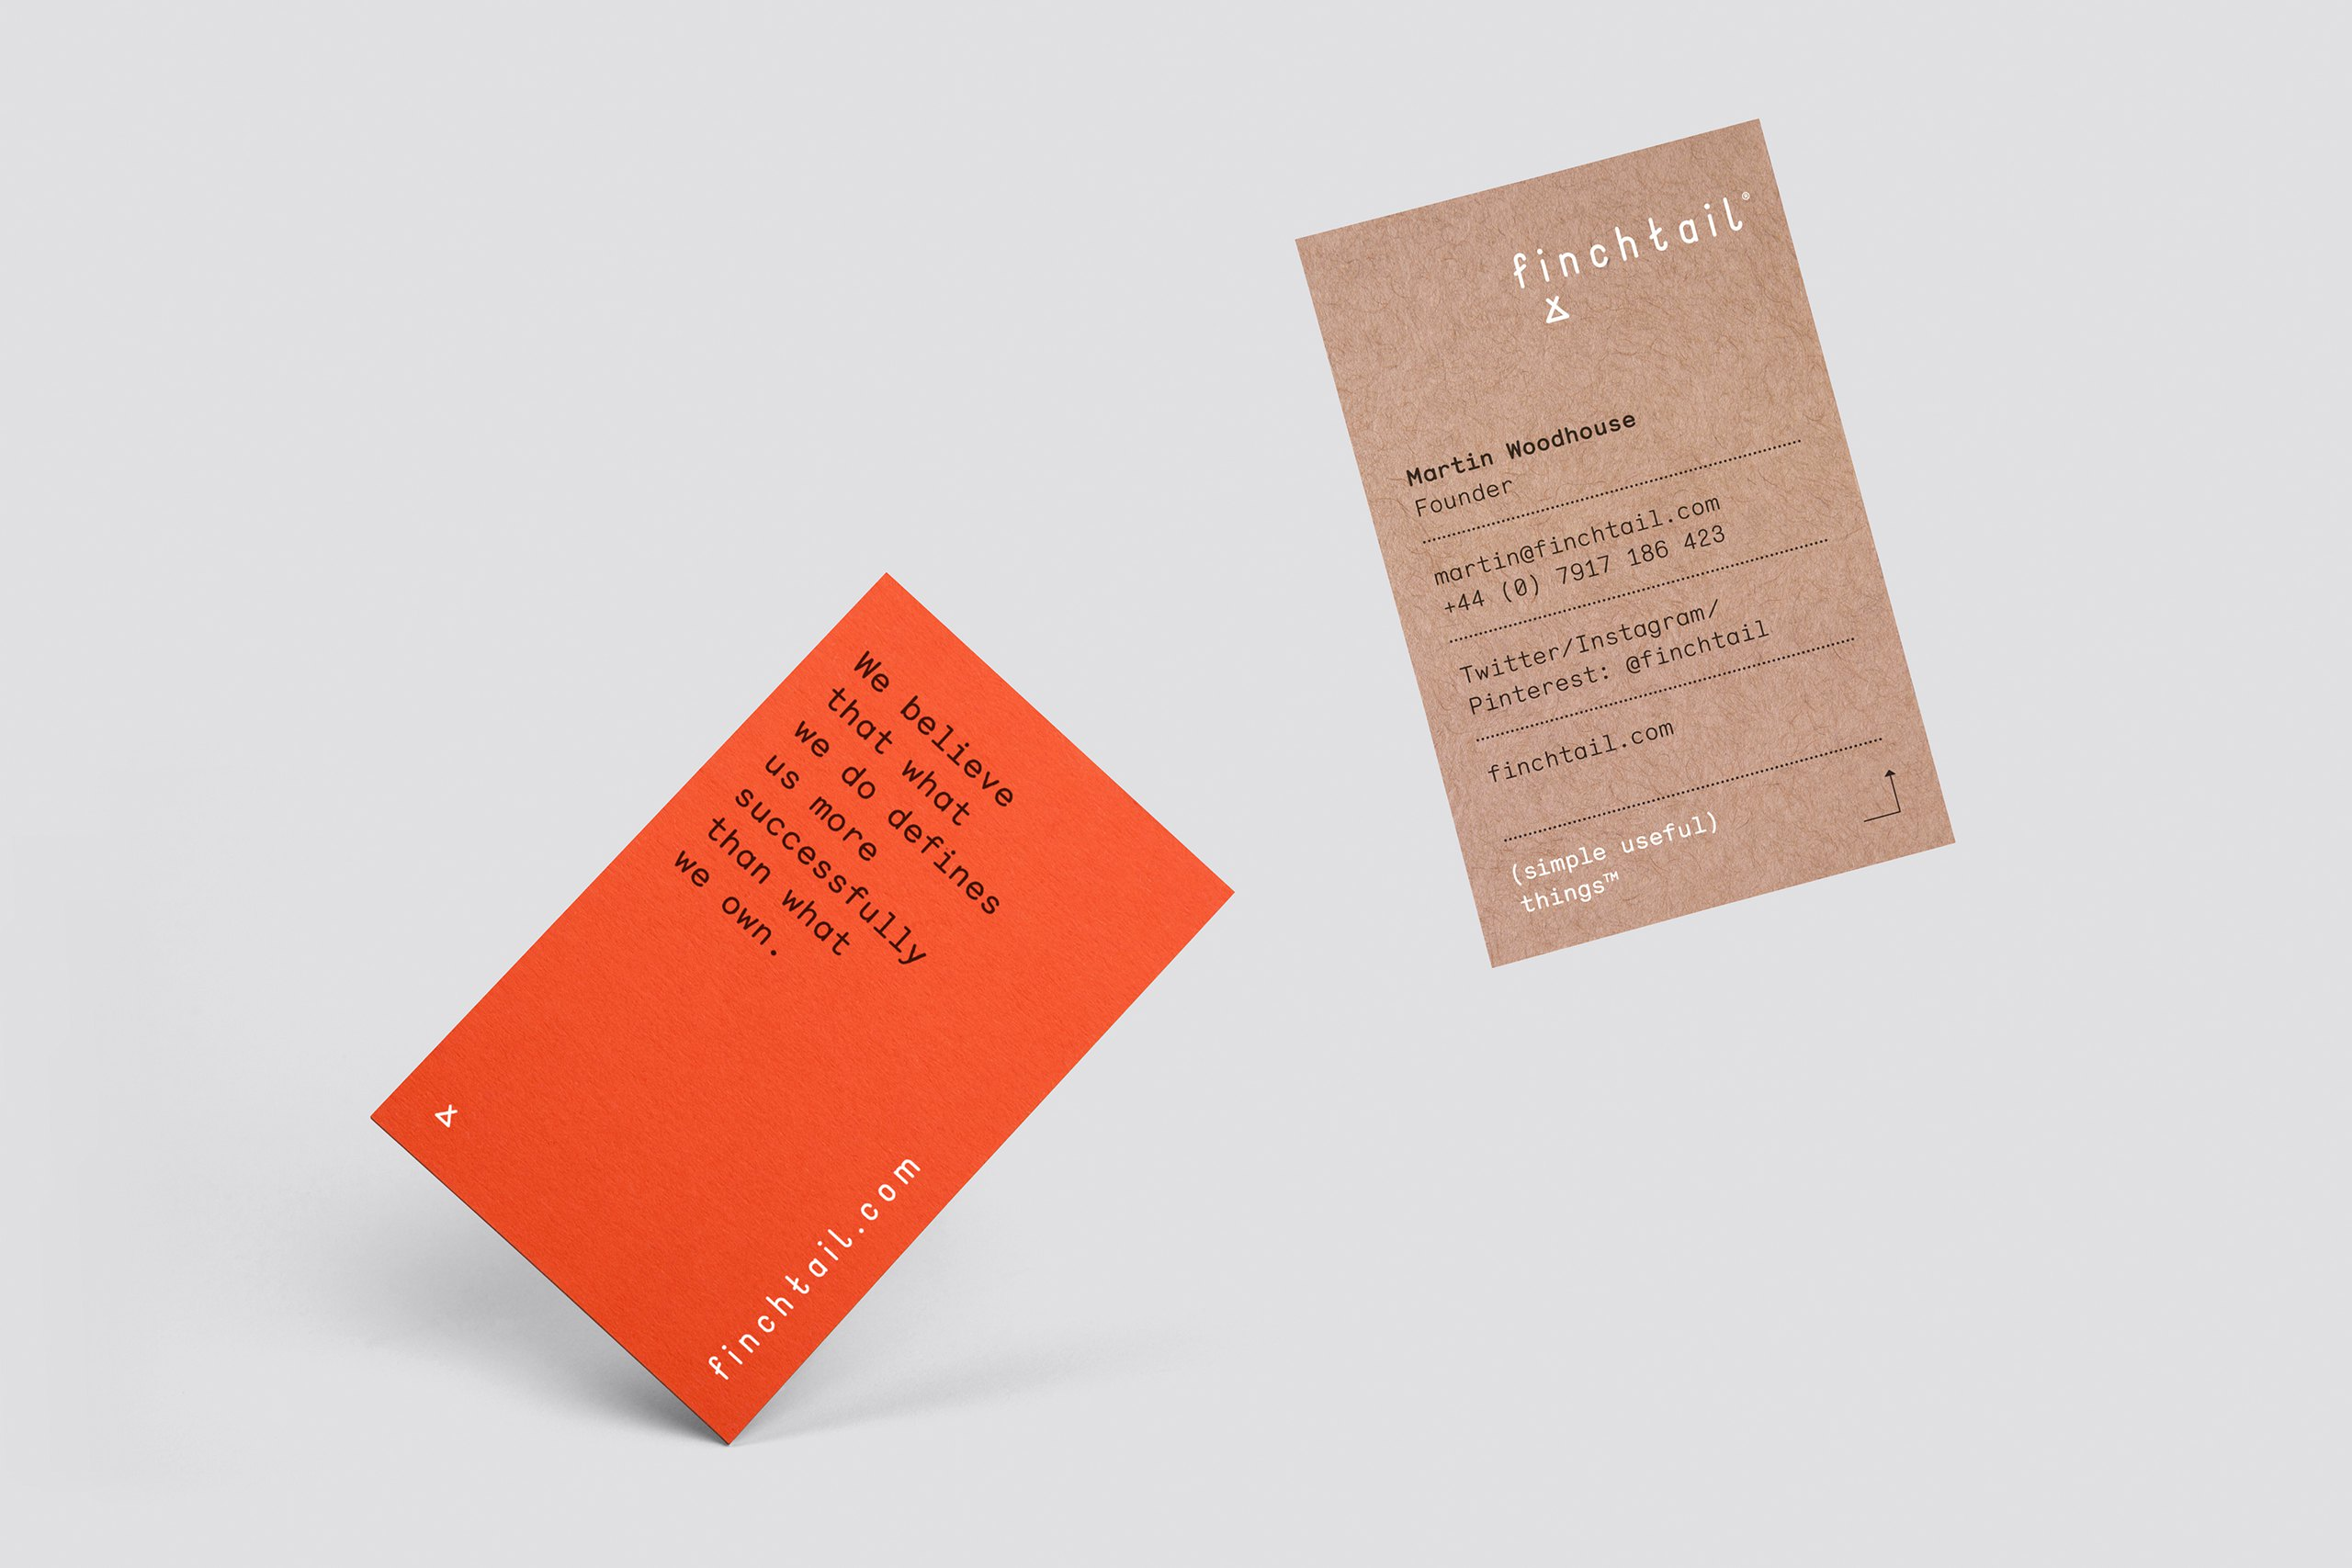 Finchtail - Brand & packaging